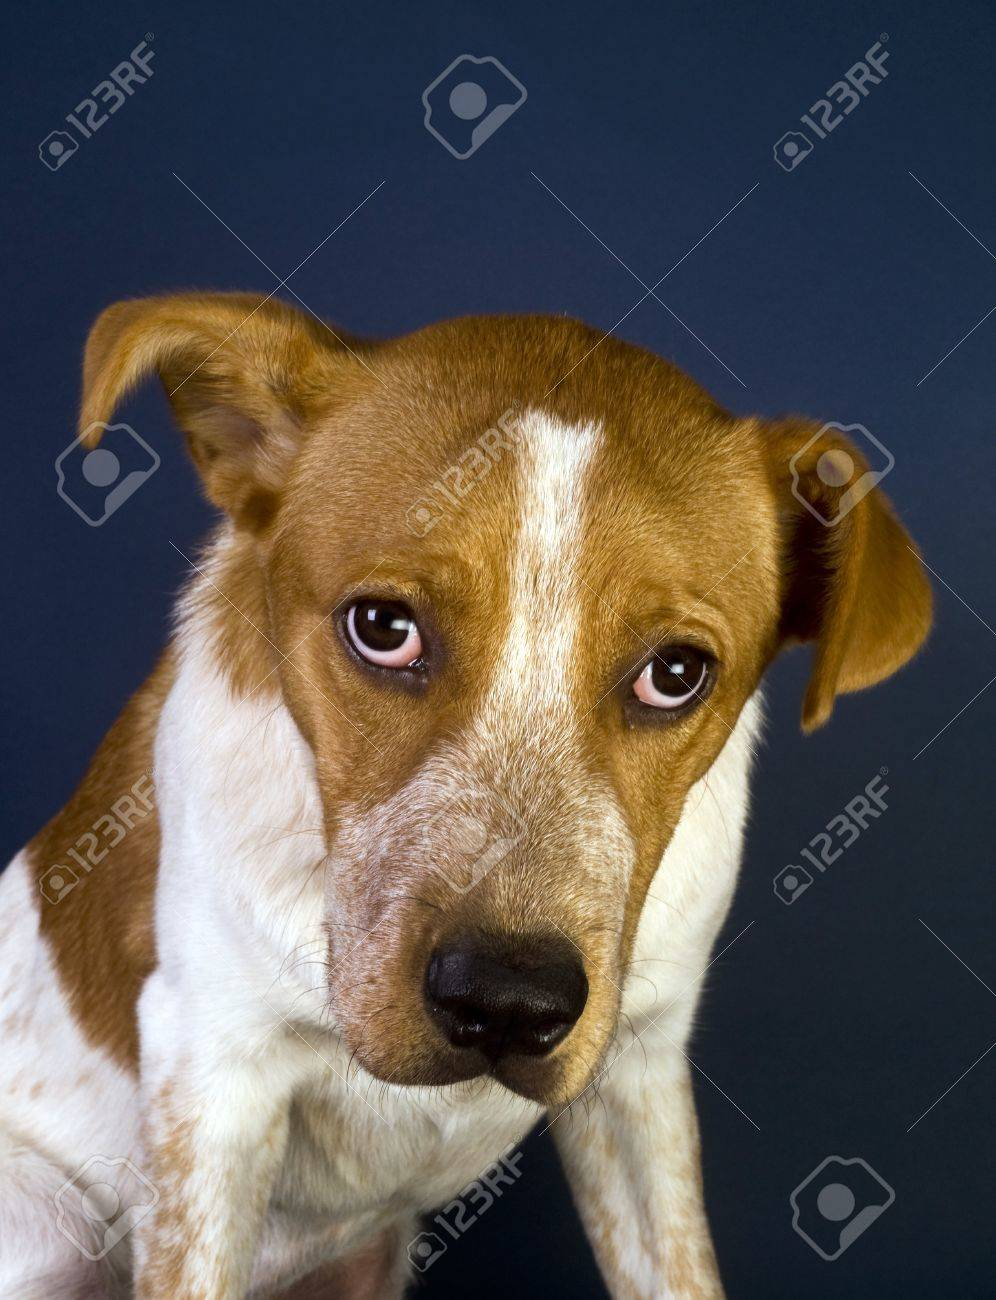 Cute Red Head Puppy. Six Months Old. Stock Photo - 13794658